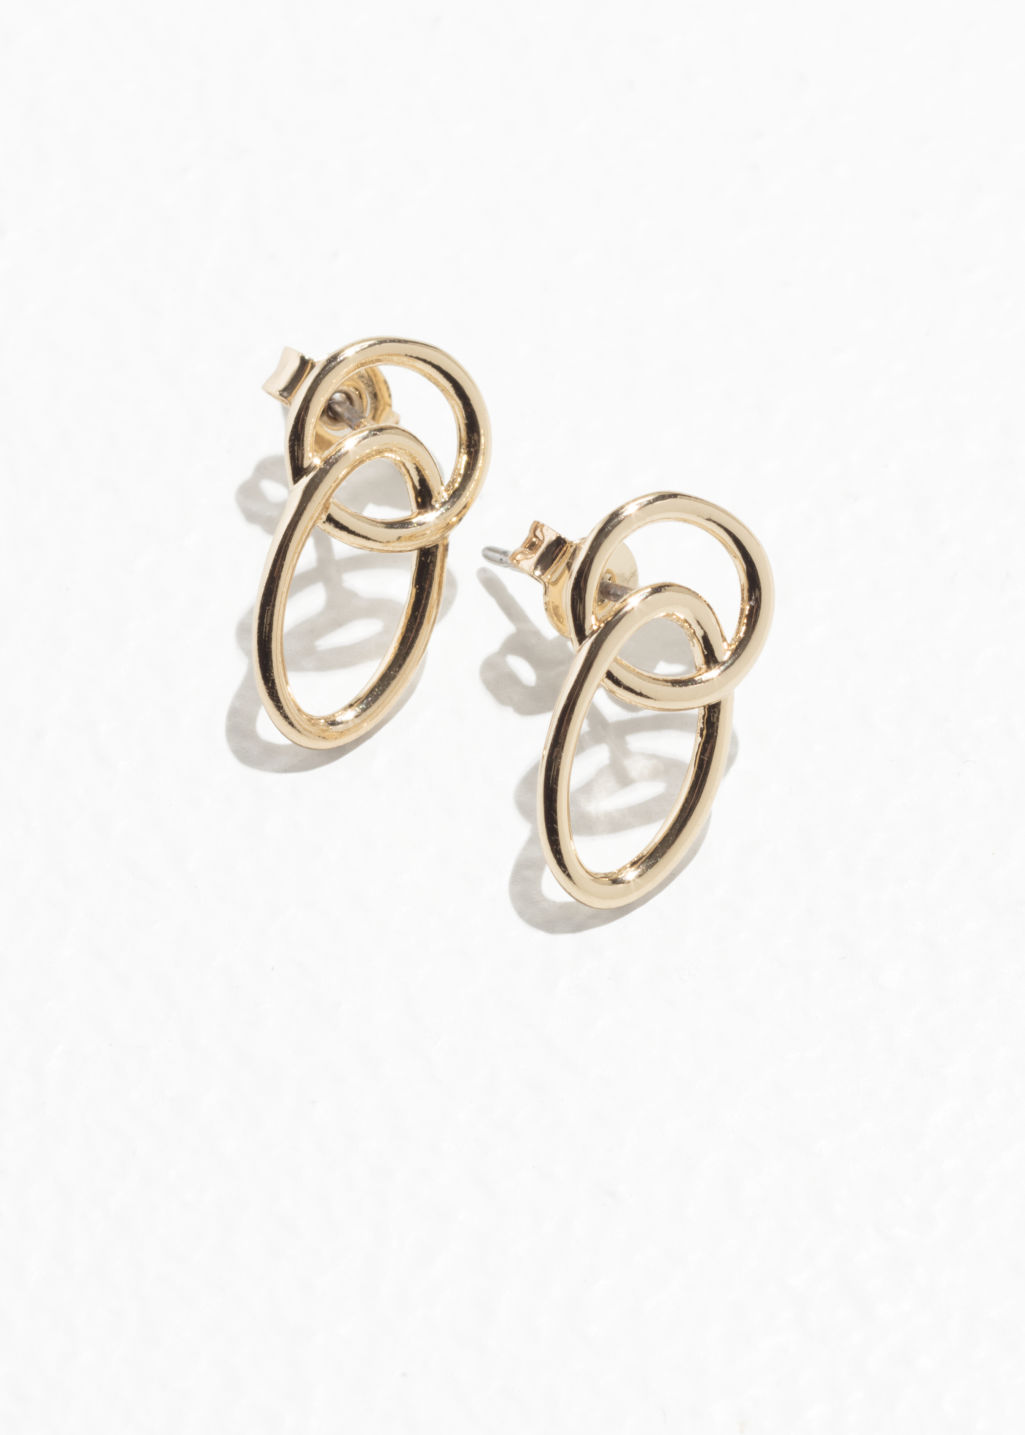 Duo Ring Earrings